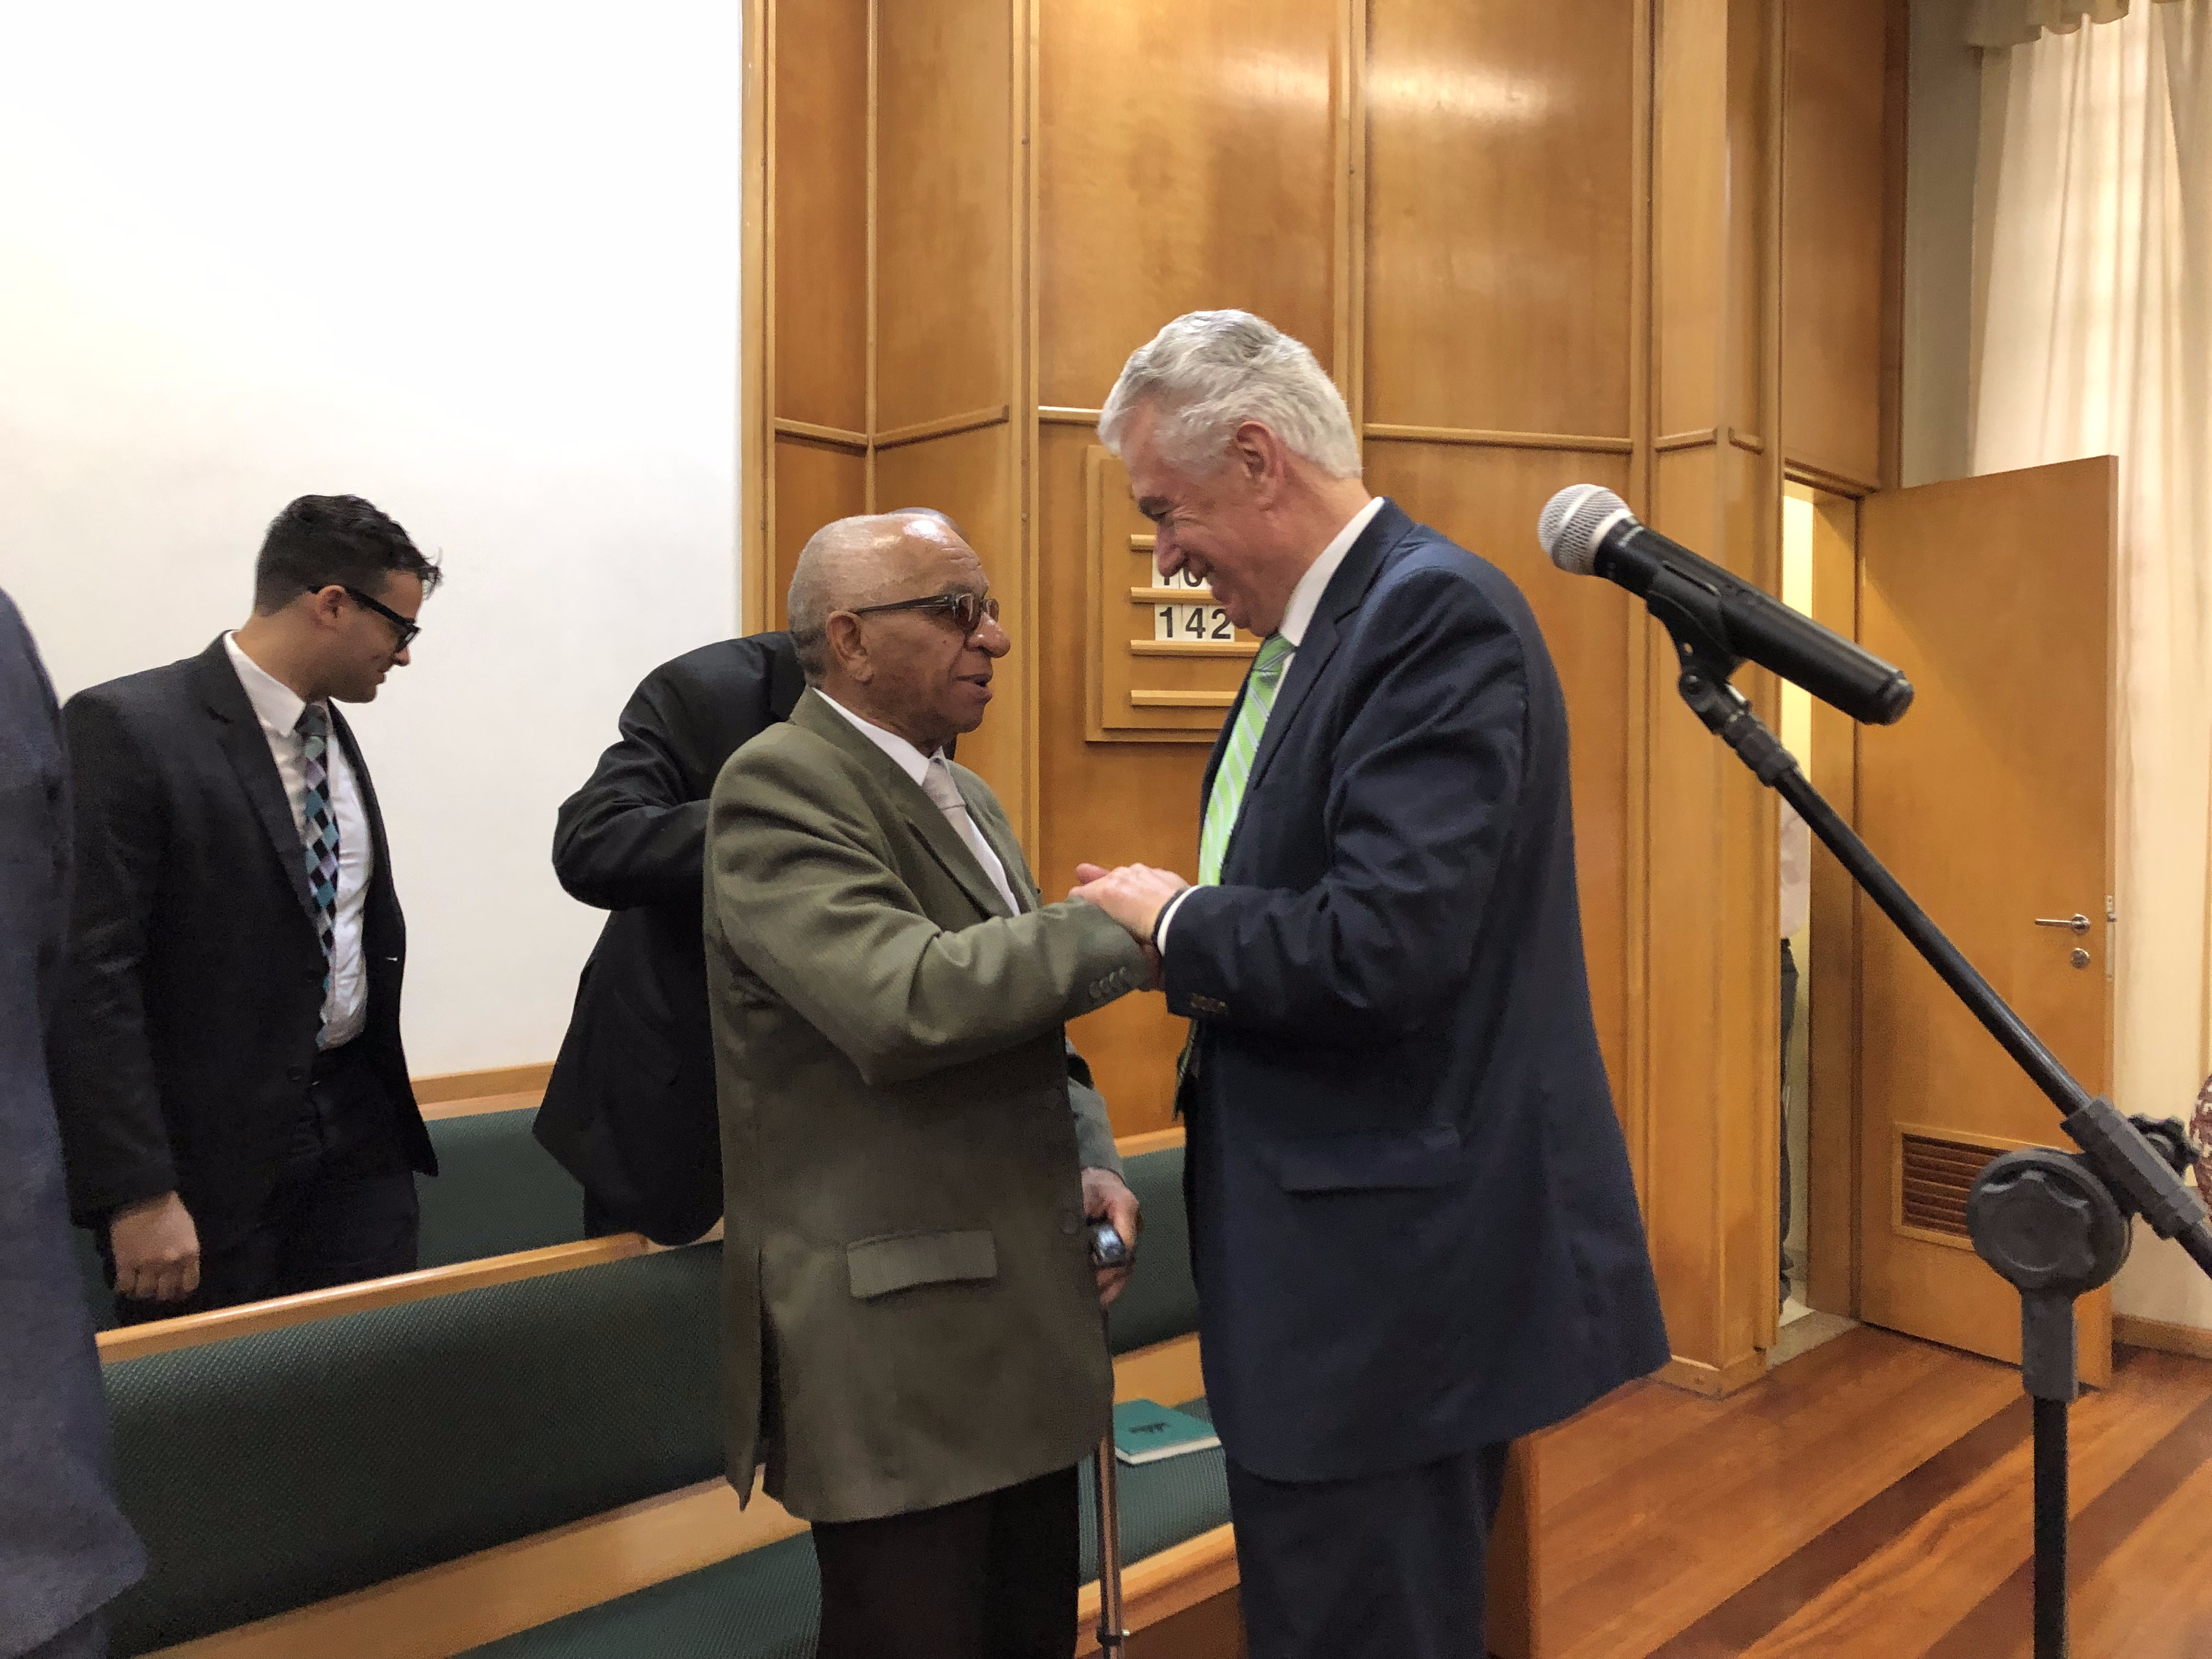 Elder Dieter F. Uchtdorf of the Quorum of the Twelve Apostles visits with Vitorino Luiz da Silva, second counselor in the Taipas Ward bishopric, who is blind. Elder Uchtdorf met with the Taipas Ward, of the Sao Paulo Brazil Jaragua Stake, for their Sunday meetings in February 2019.